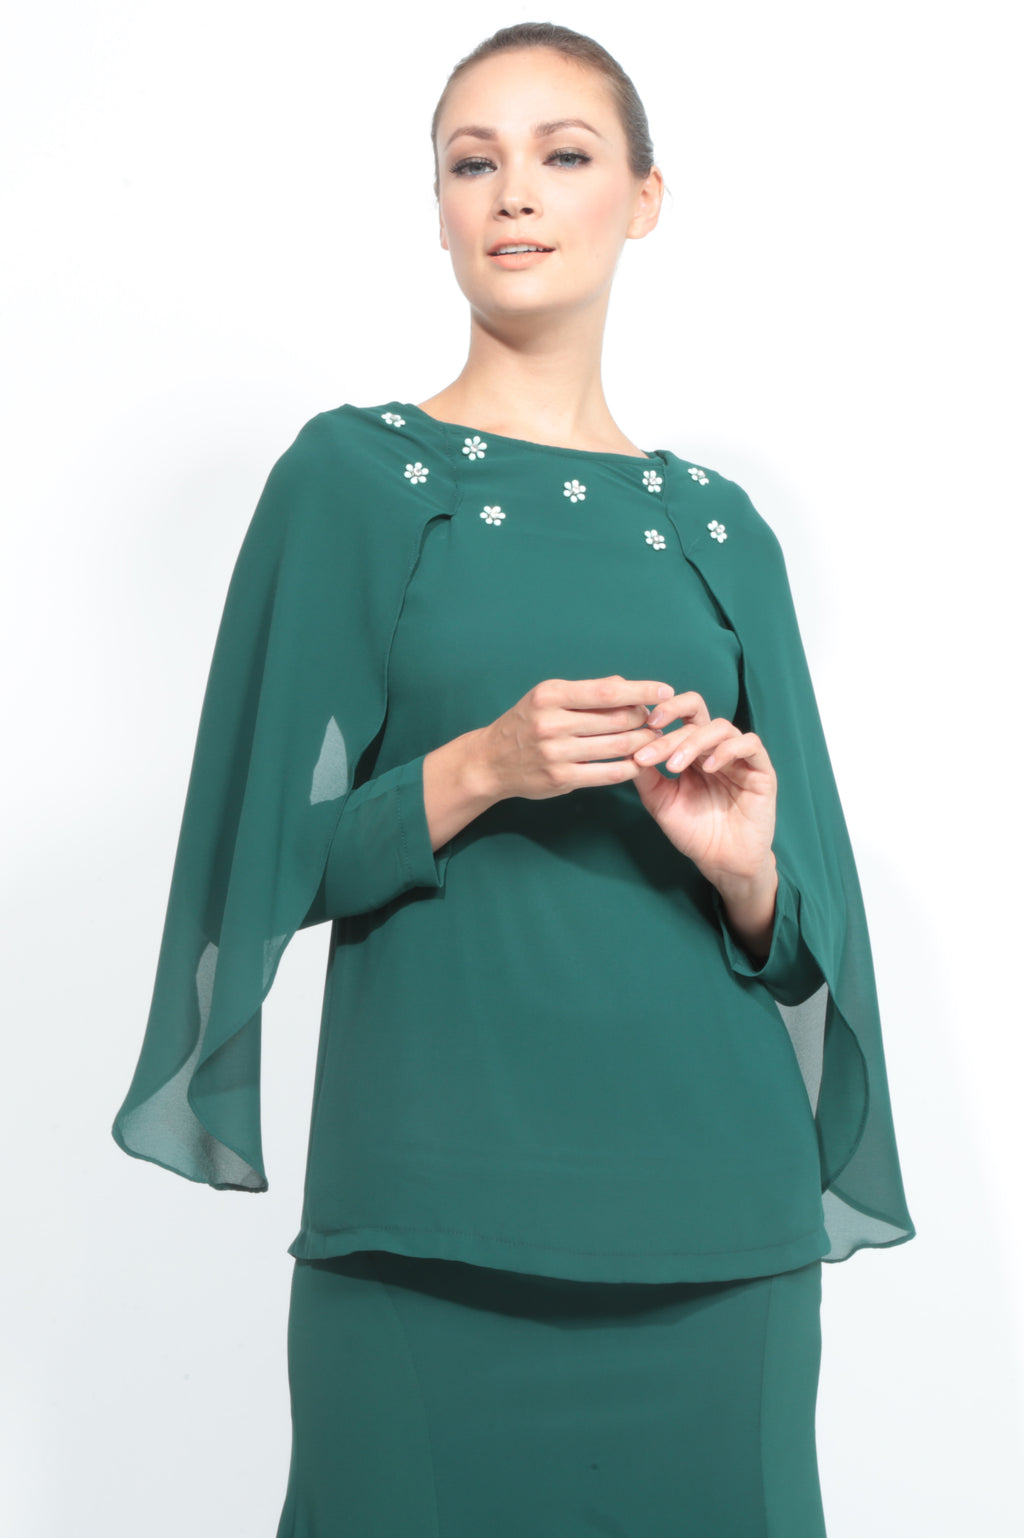 Batwing Chiffon Top with Skirt in Emerald Green